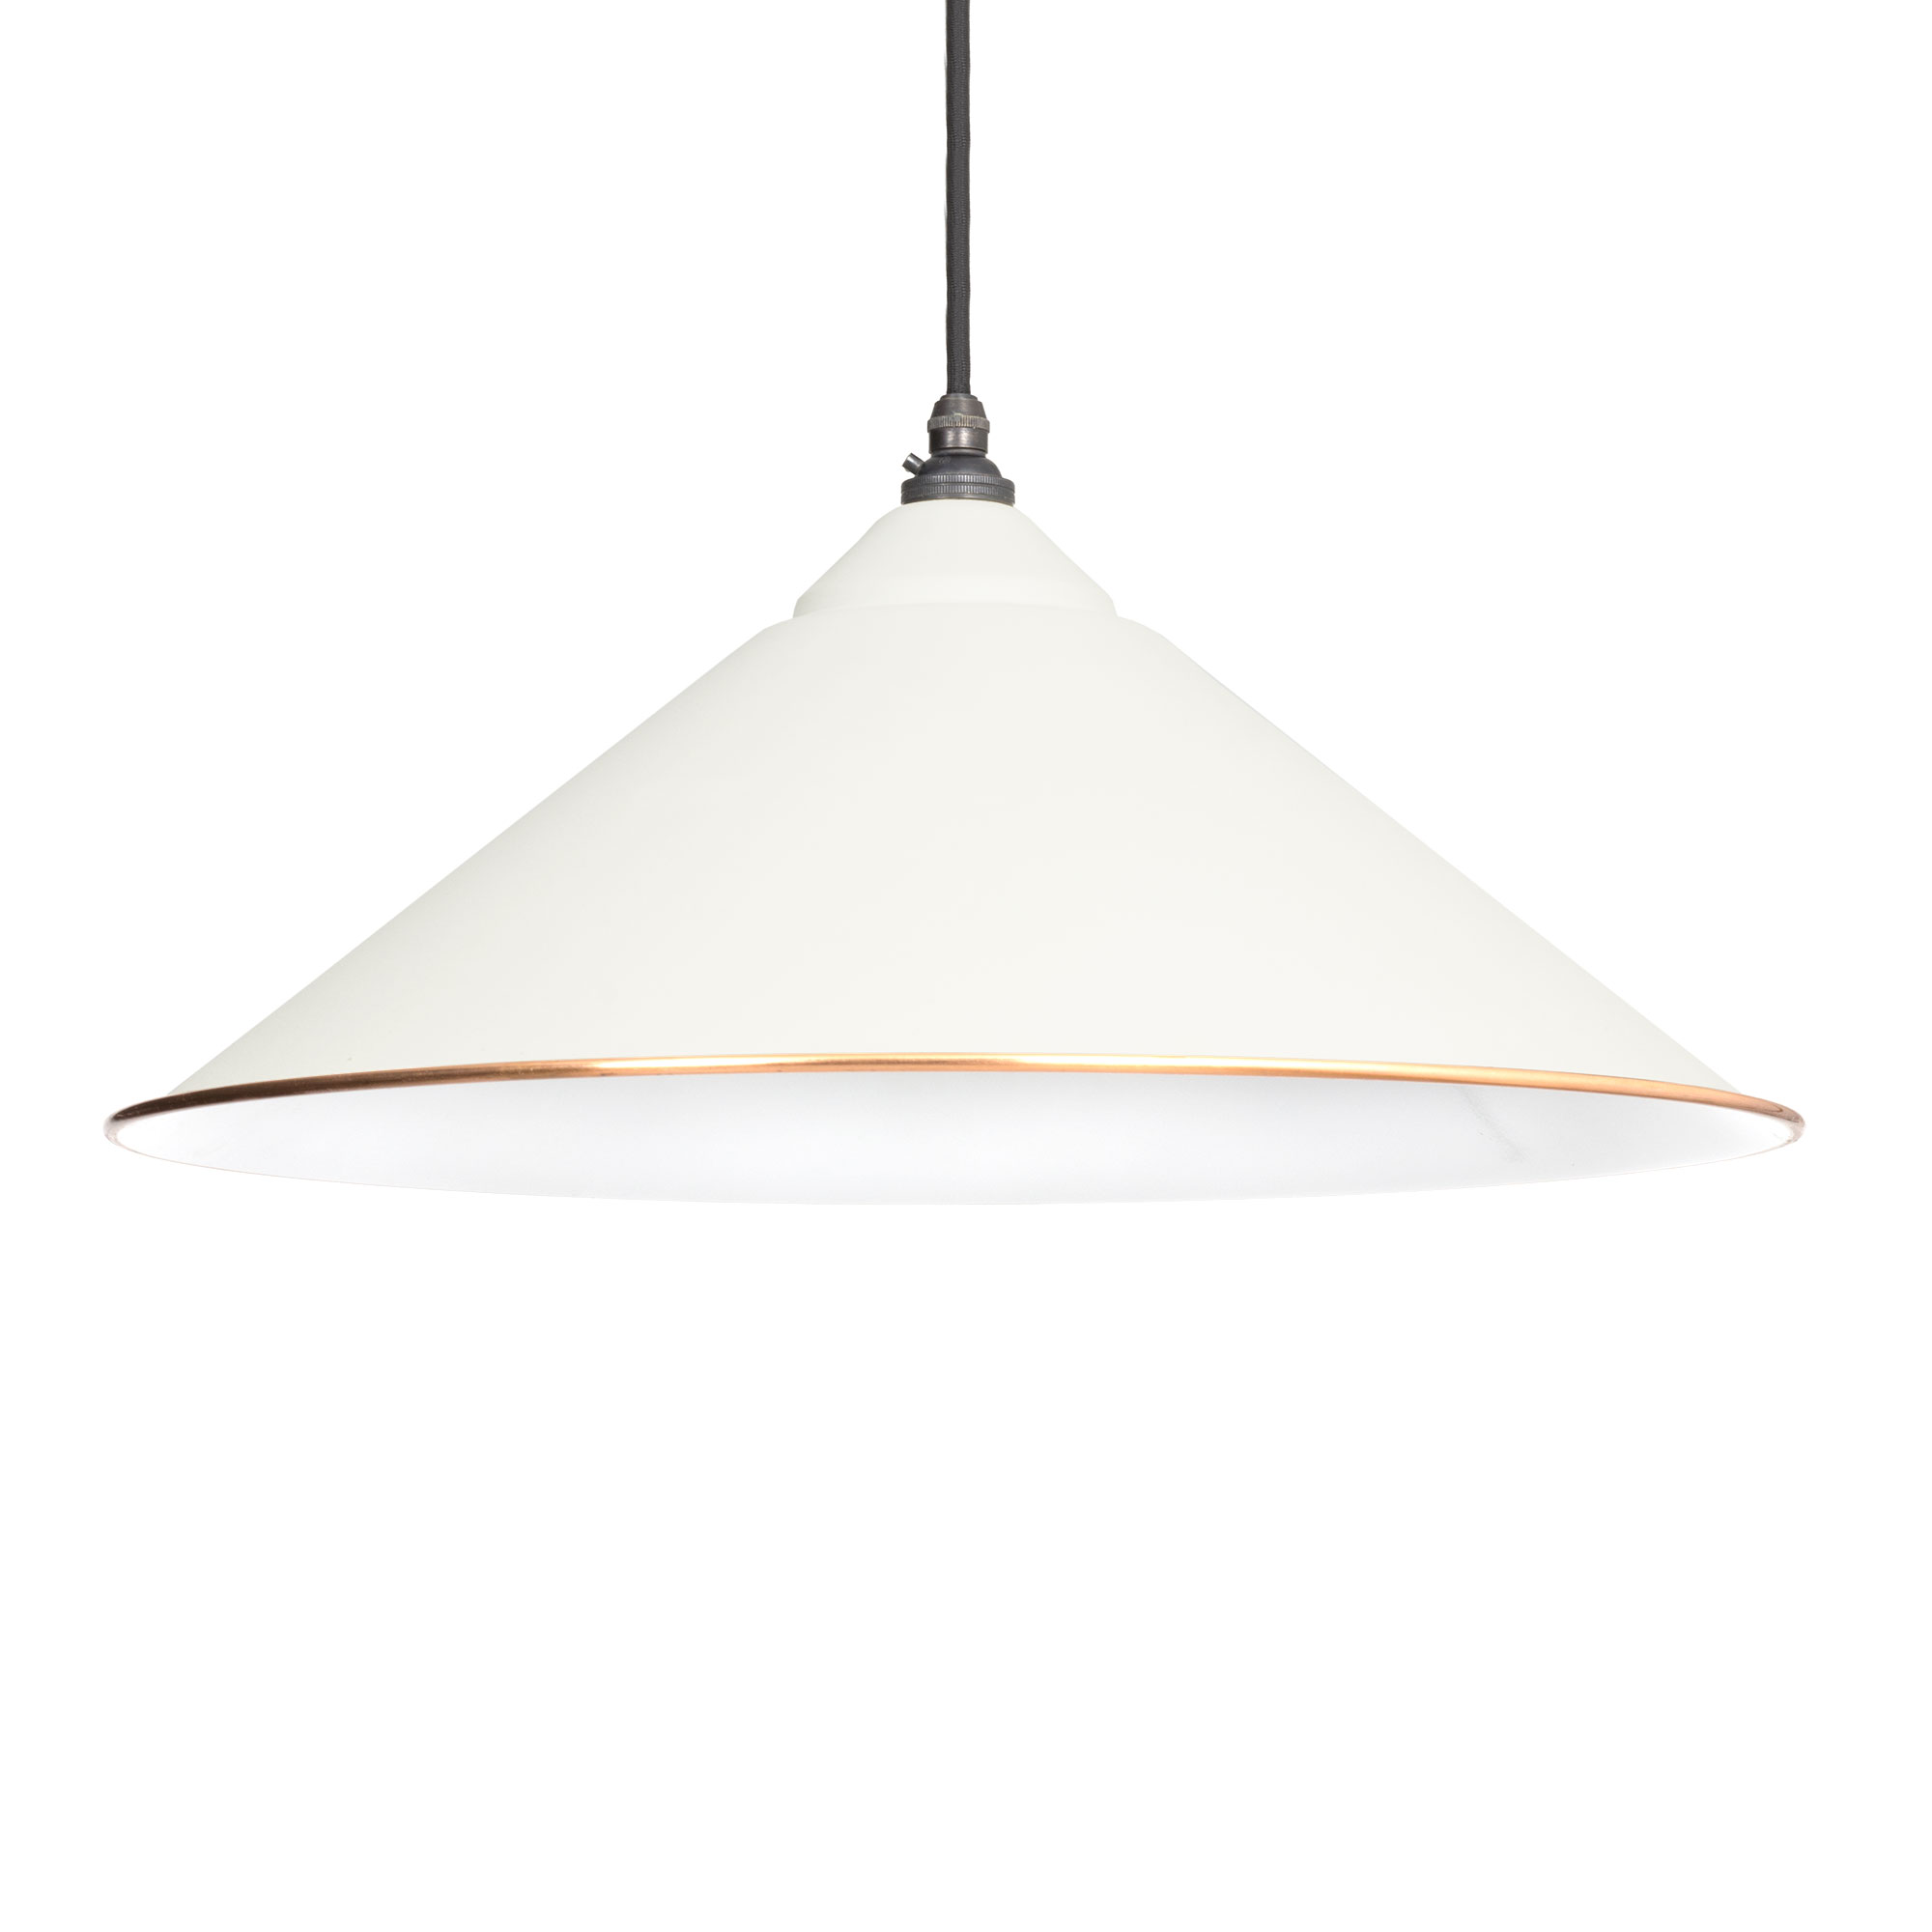 Yardley Pendant Accents 460mm Dia, 210mm Height Oatmeal